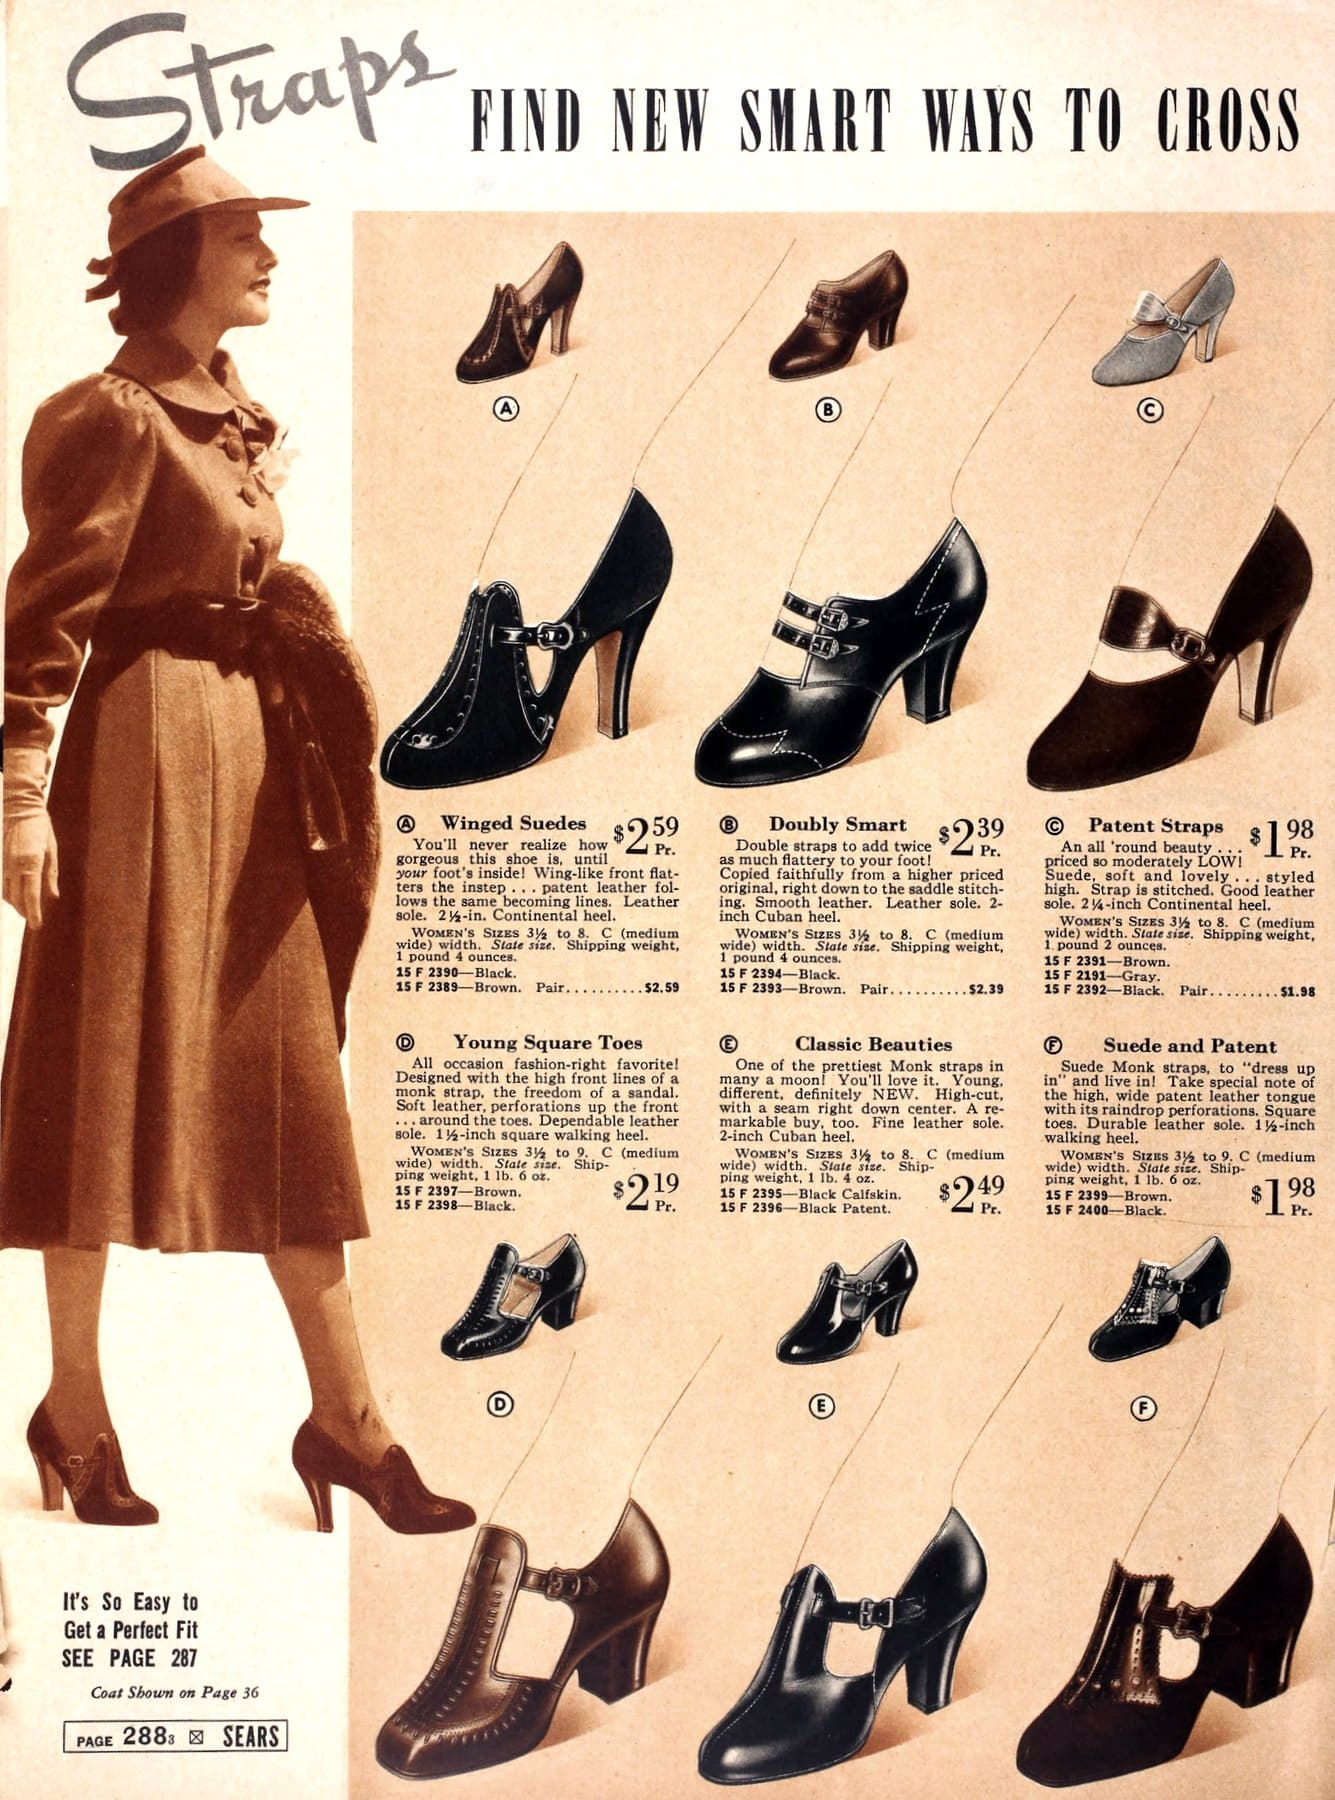 Classic 1930s shoes and heels with straips from 1937